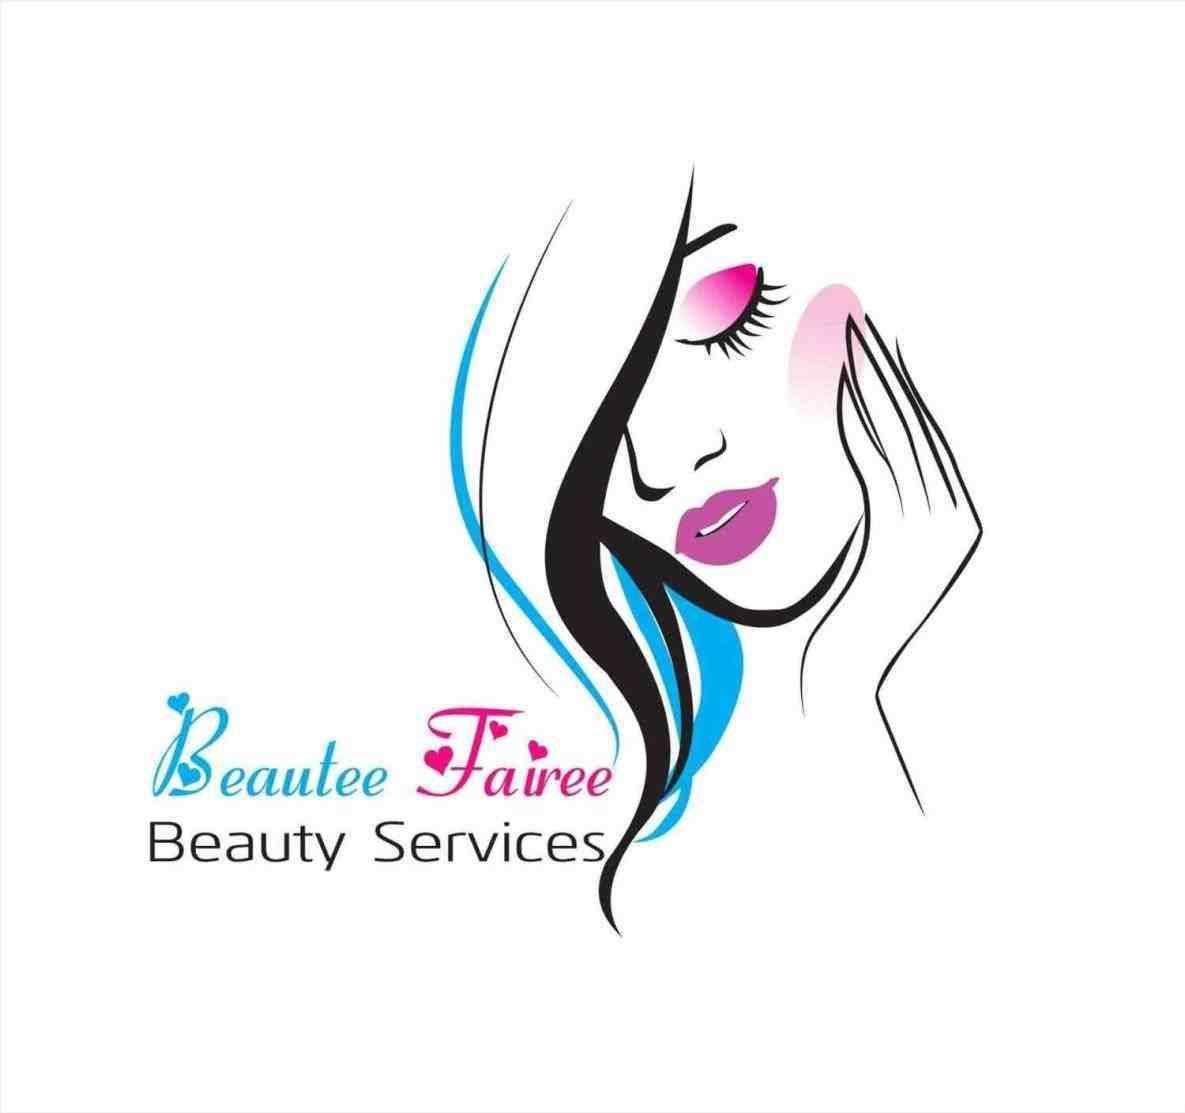 dsc beauty salon inspiration epic hair and beauty salon logo design rh pinterest ch hair salon logos images salon logo images free